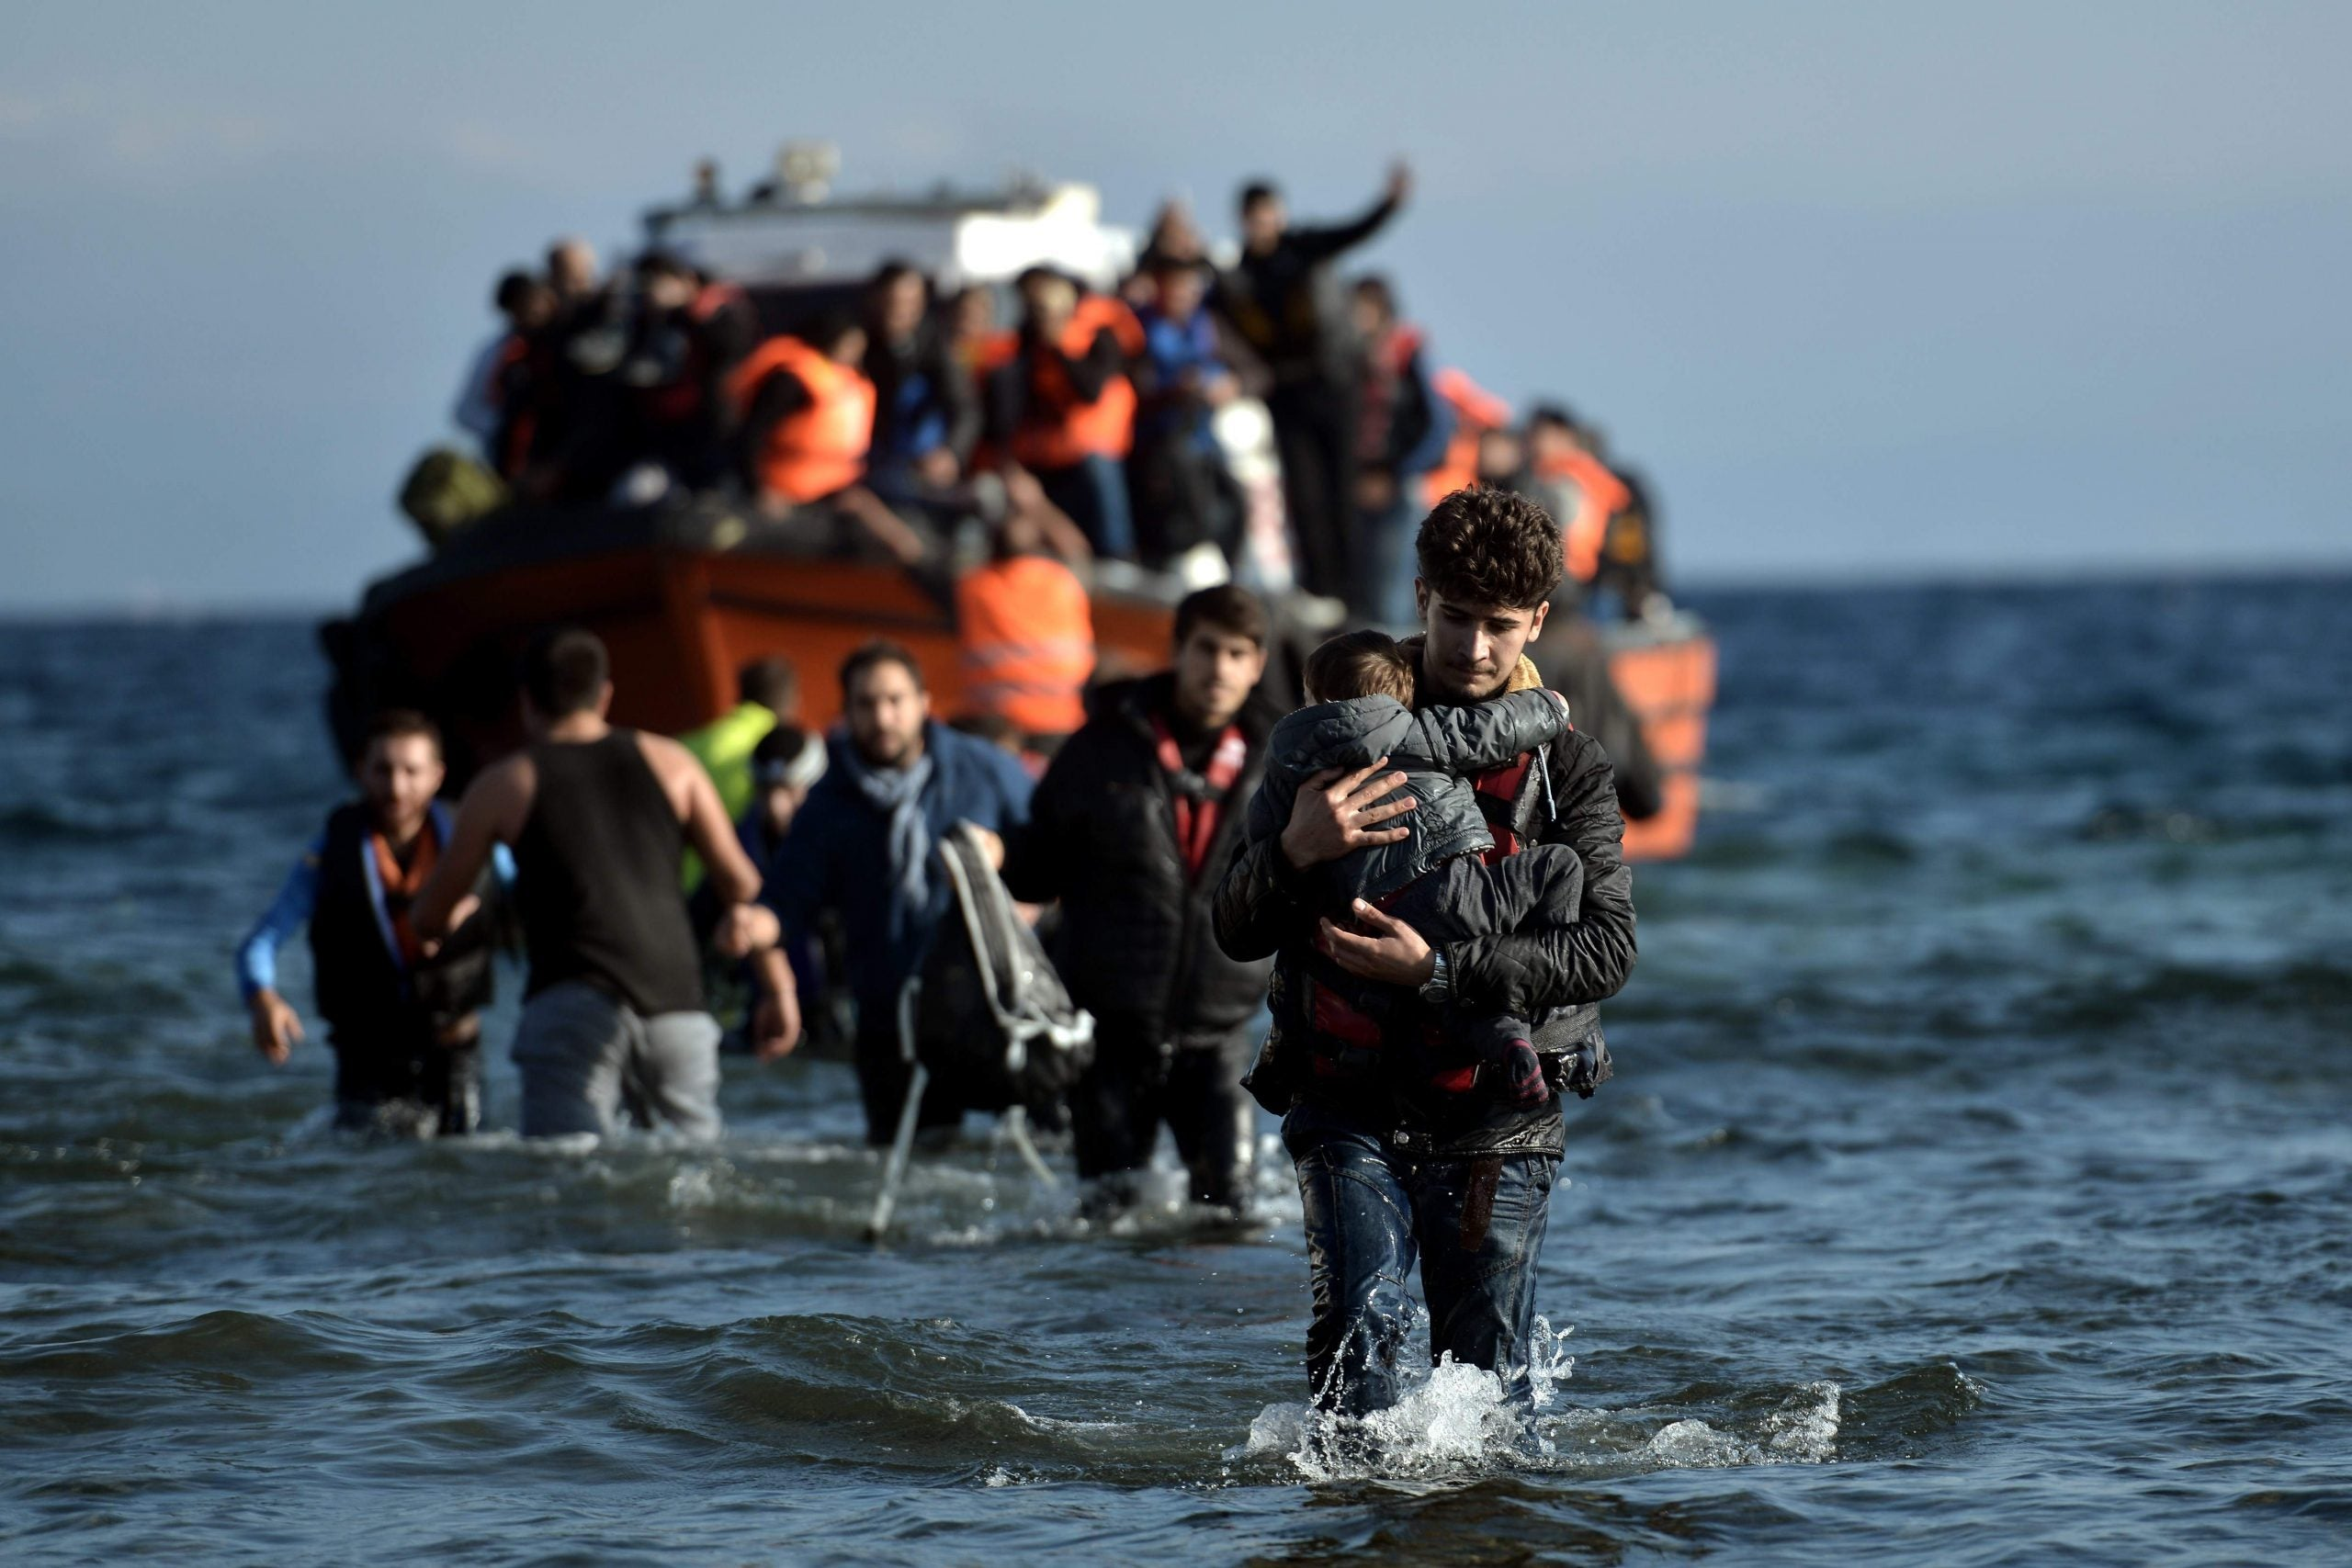 The freedom of movement debate splits migrants into those who matter and those who don't